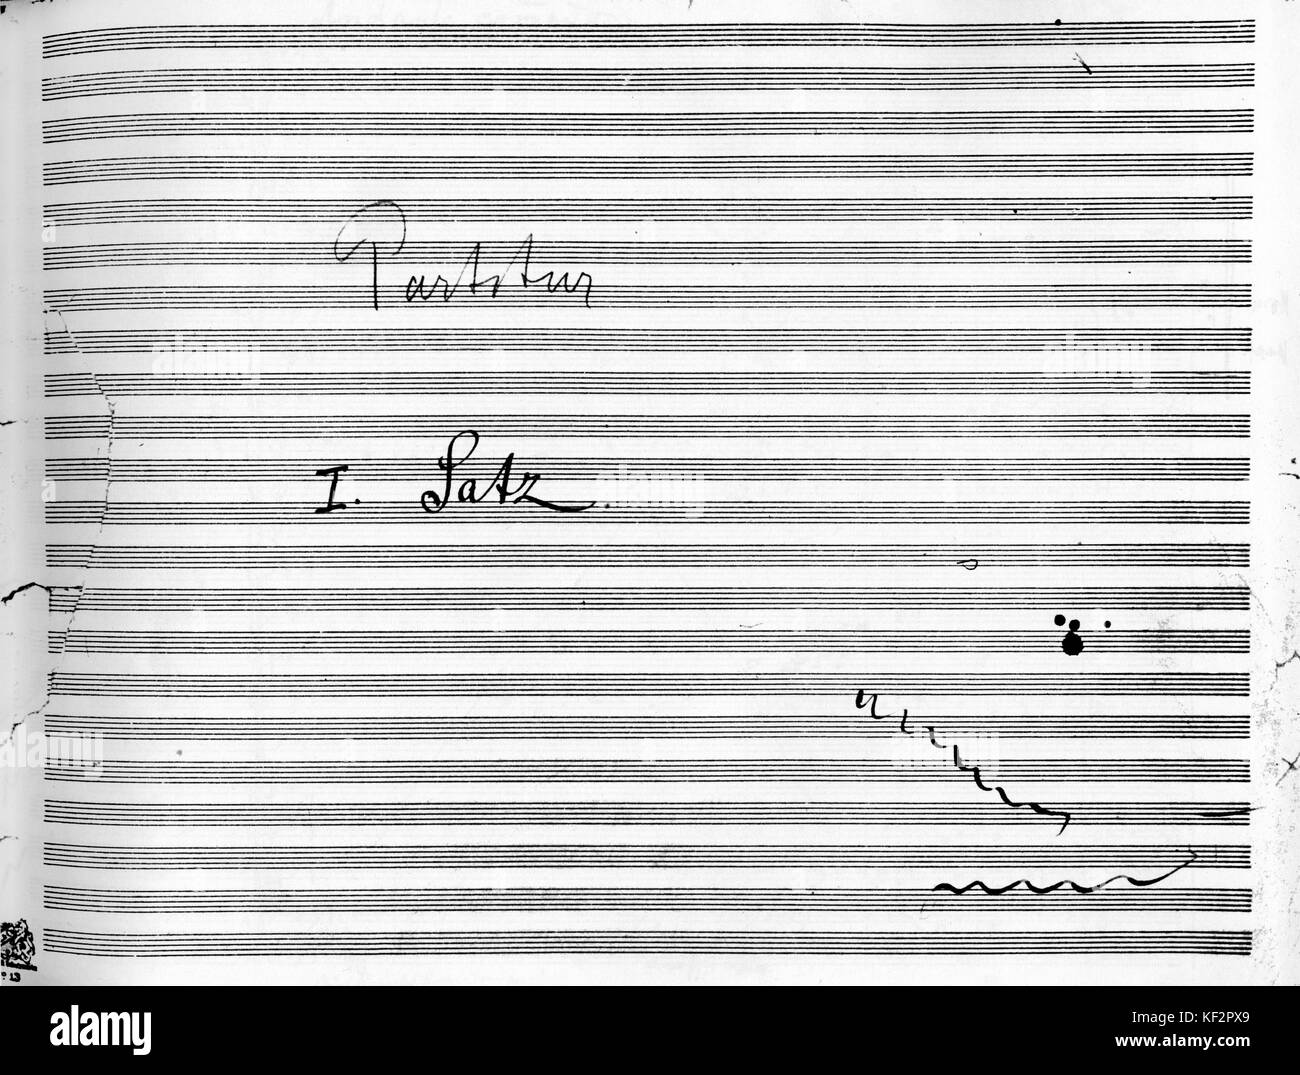 Gustav Mahler  's 9th Symphony score opening page of first movement. Reads Partitur: I Satz (Score I Movement). - Stock Image